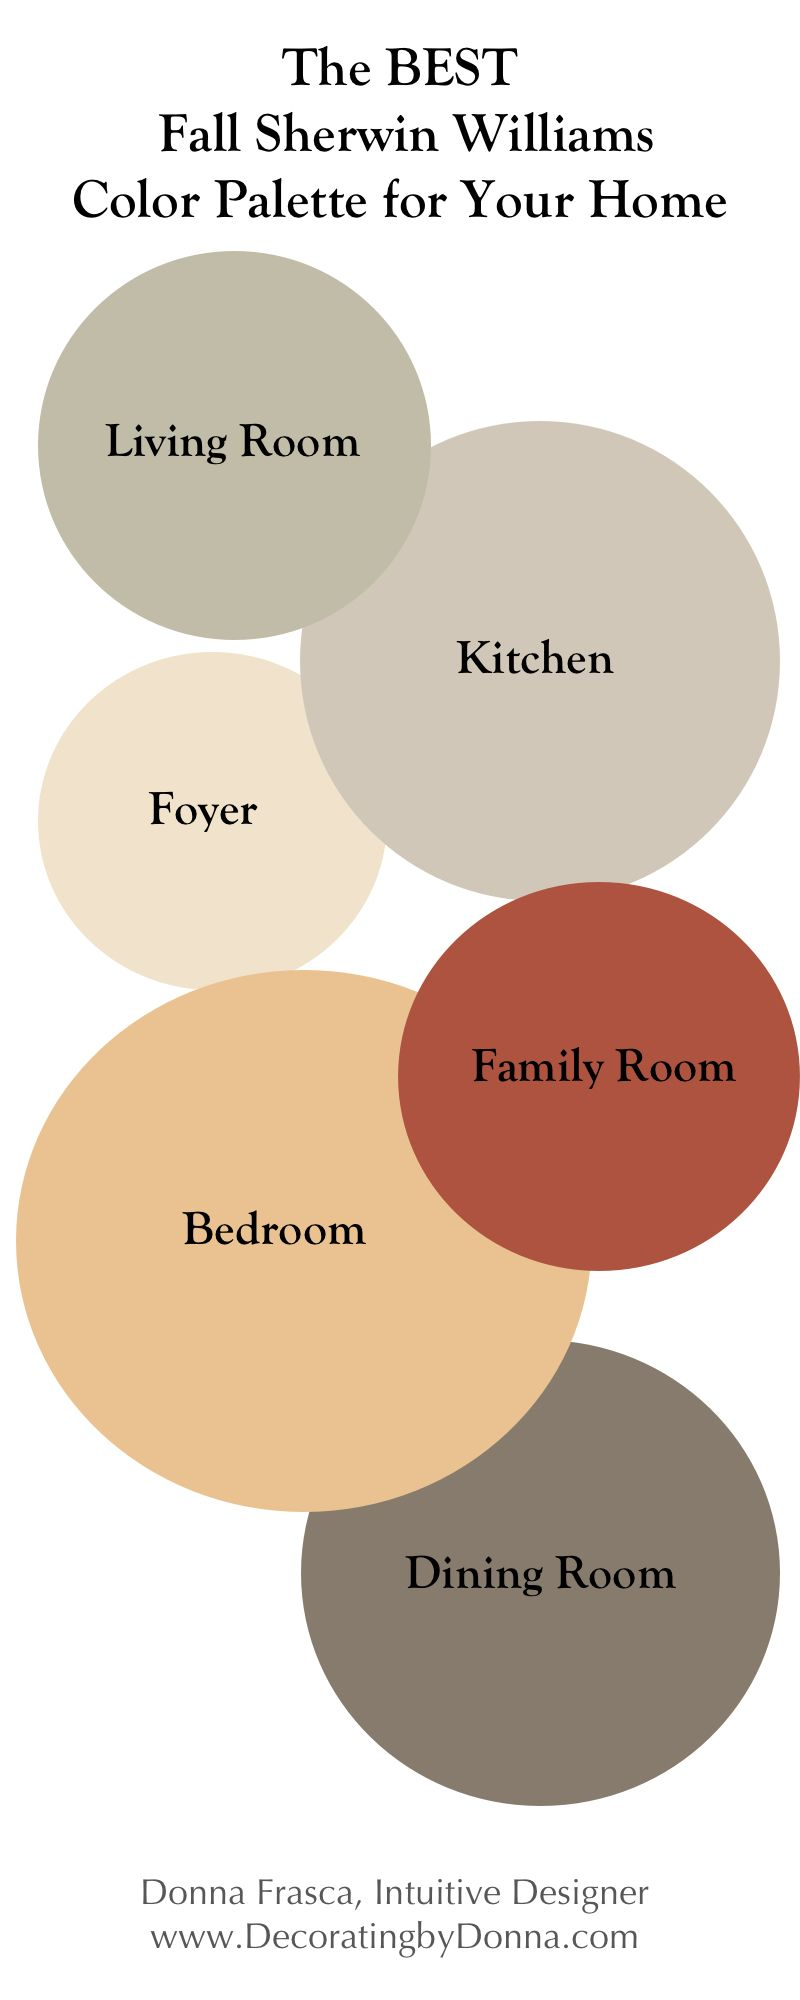 The Best Fall Sherwin Williams Color Palette For Your Home